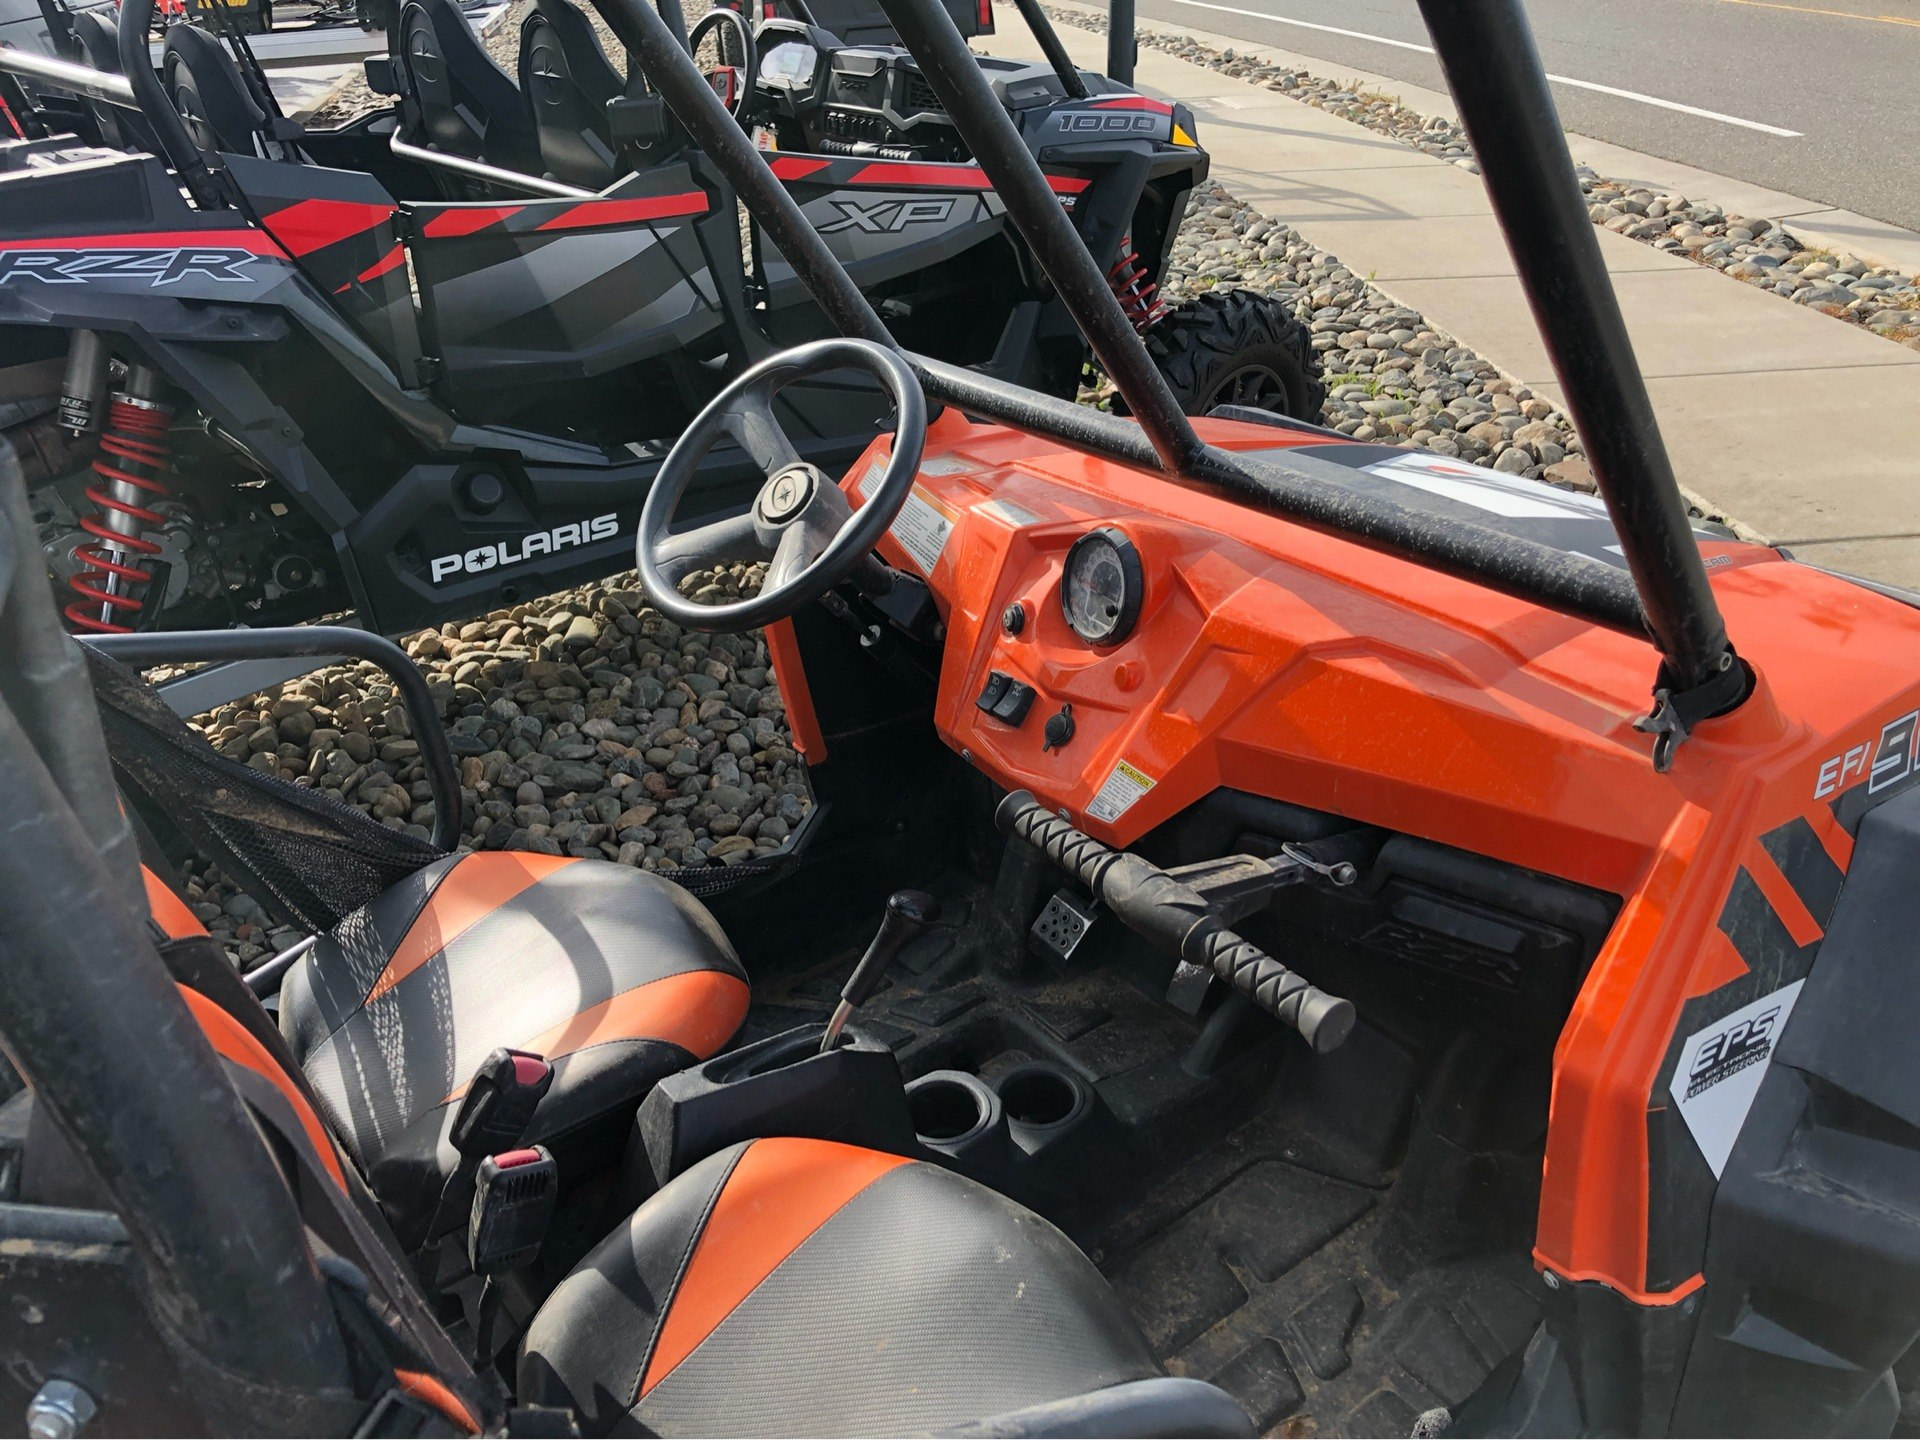 2012 Polaris Ranger RZR® XP 900 LE in Elk Grove, California - Photo 9